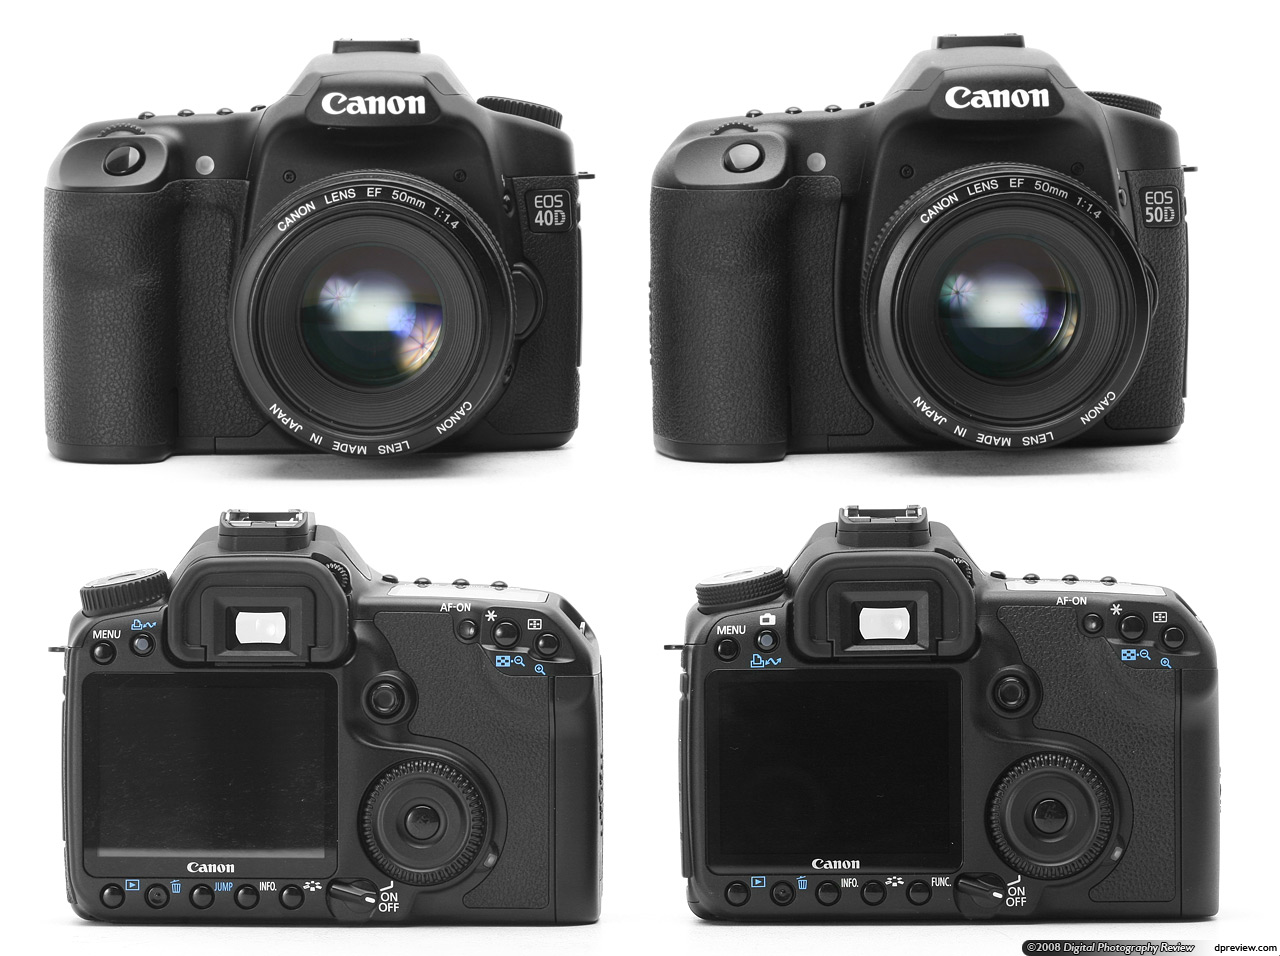 Canon EOS 50D Review: Digital Photography Review